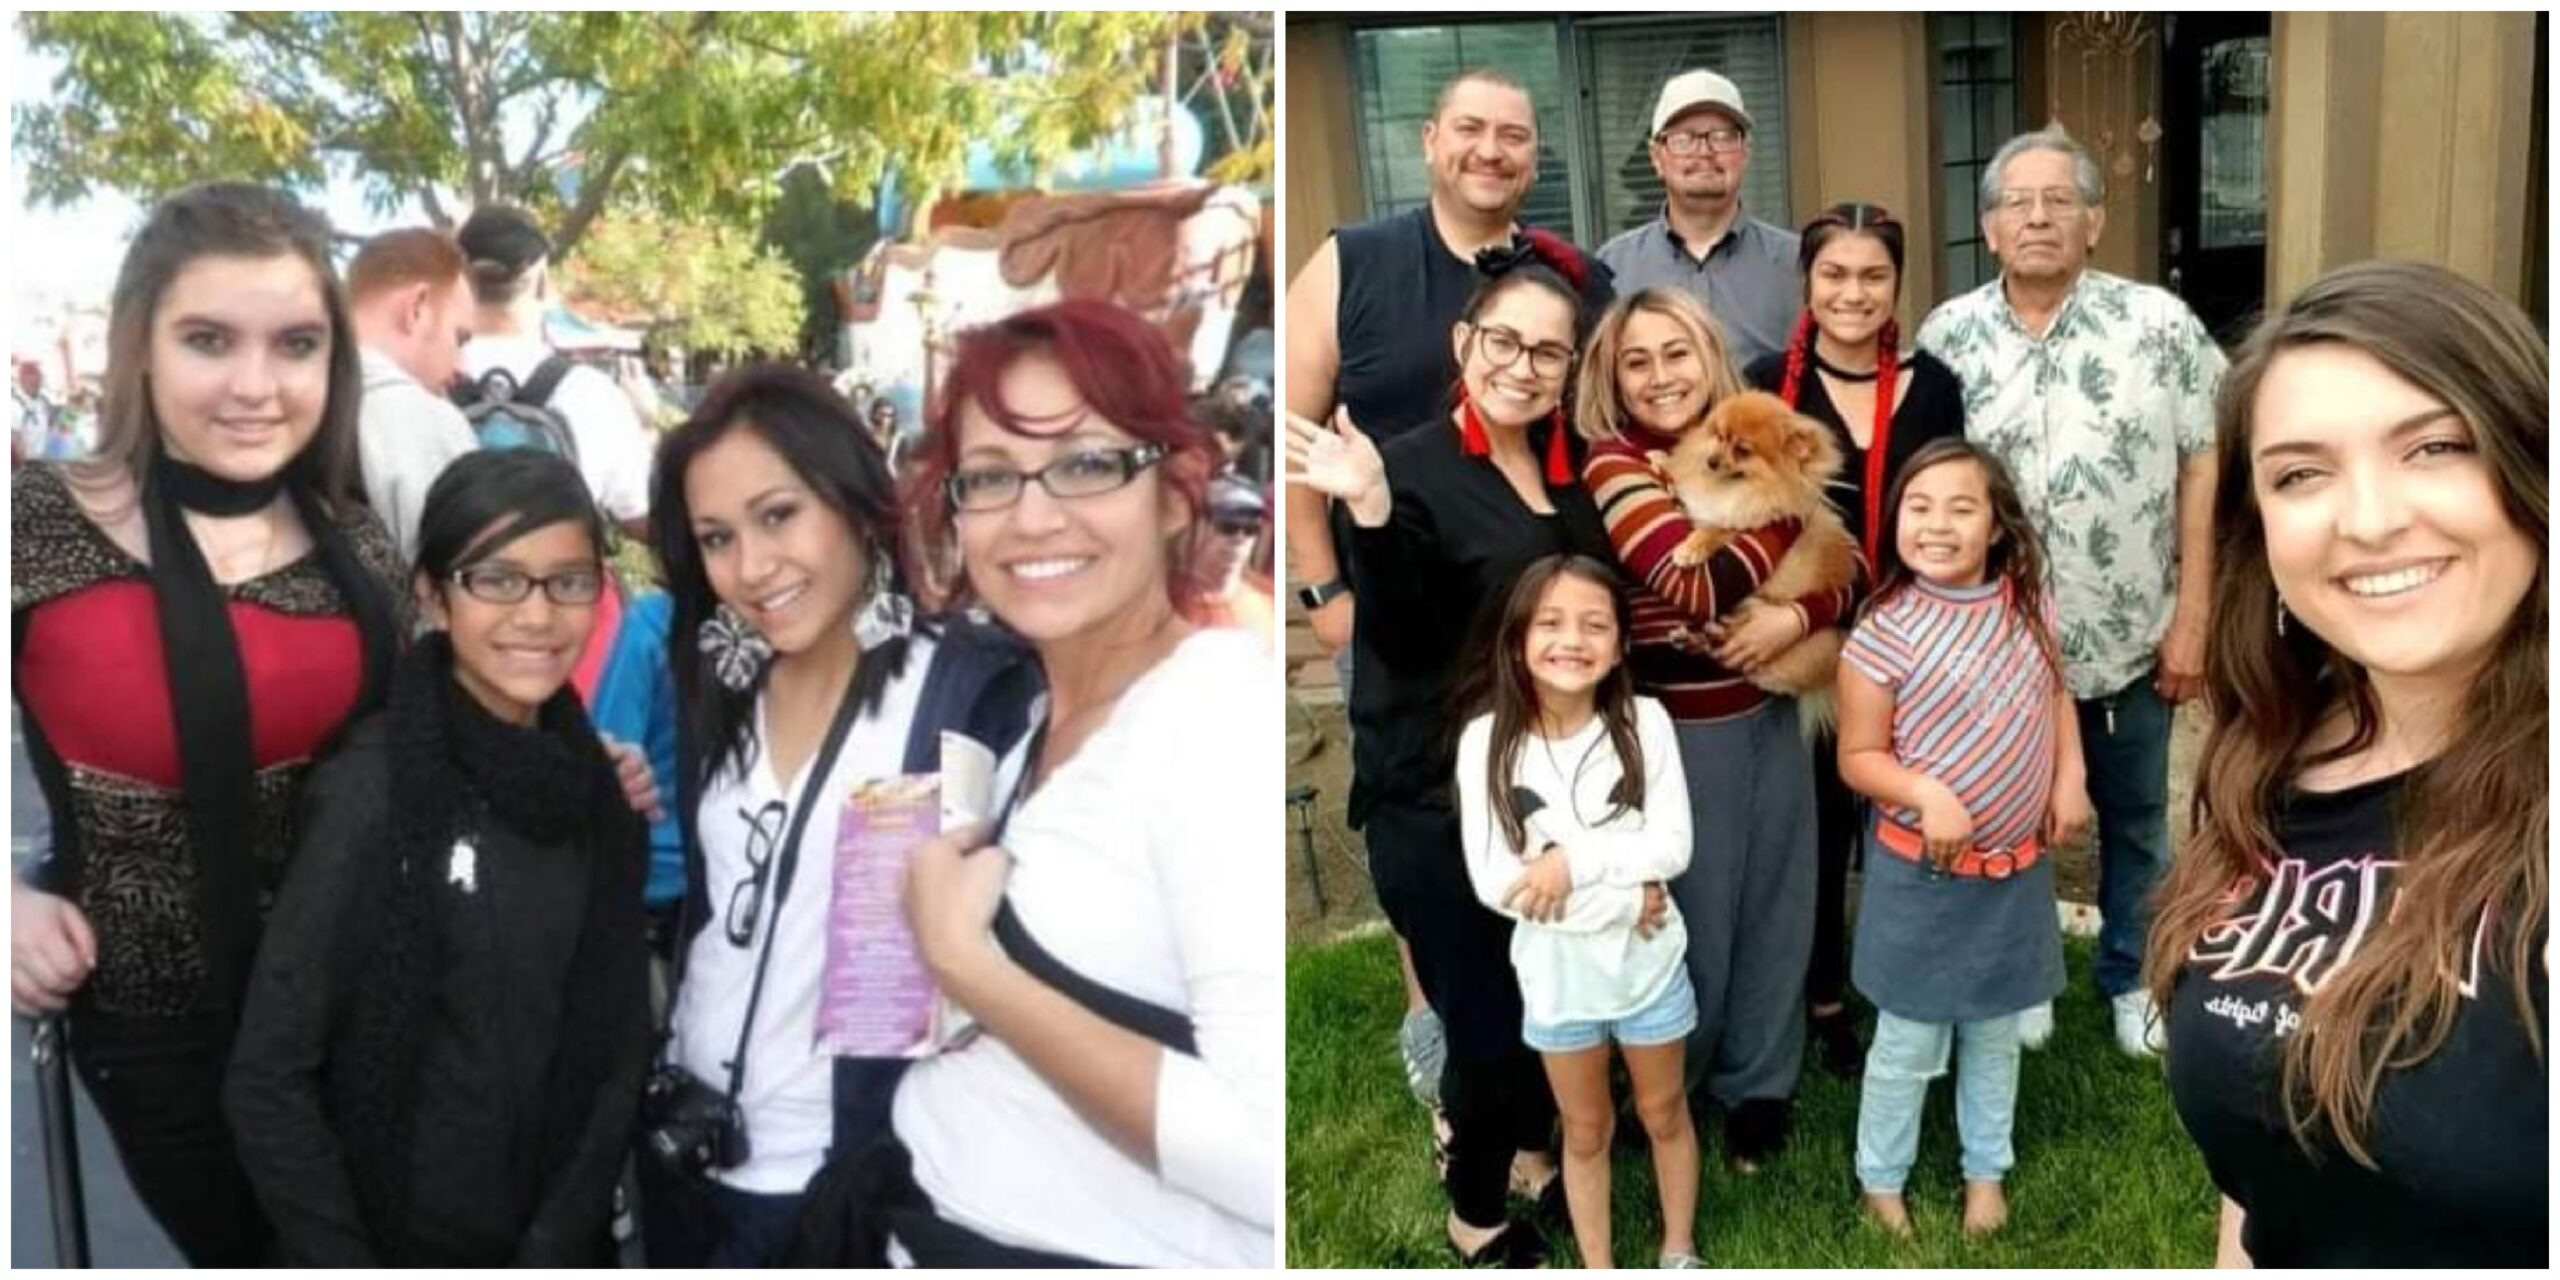 Ina with her host family, then and now.